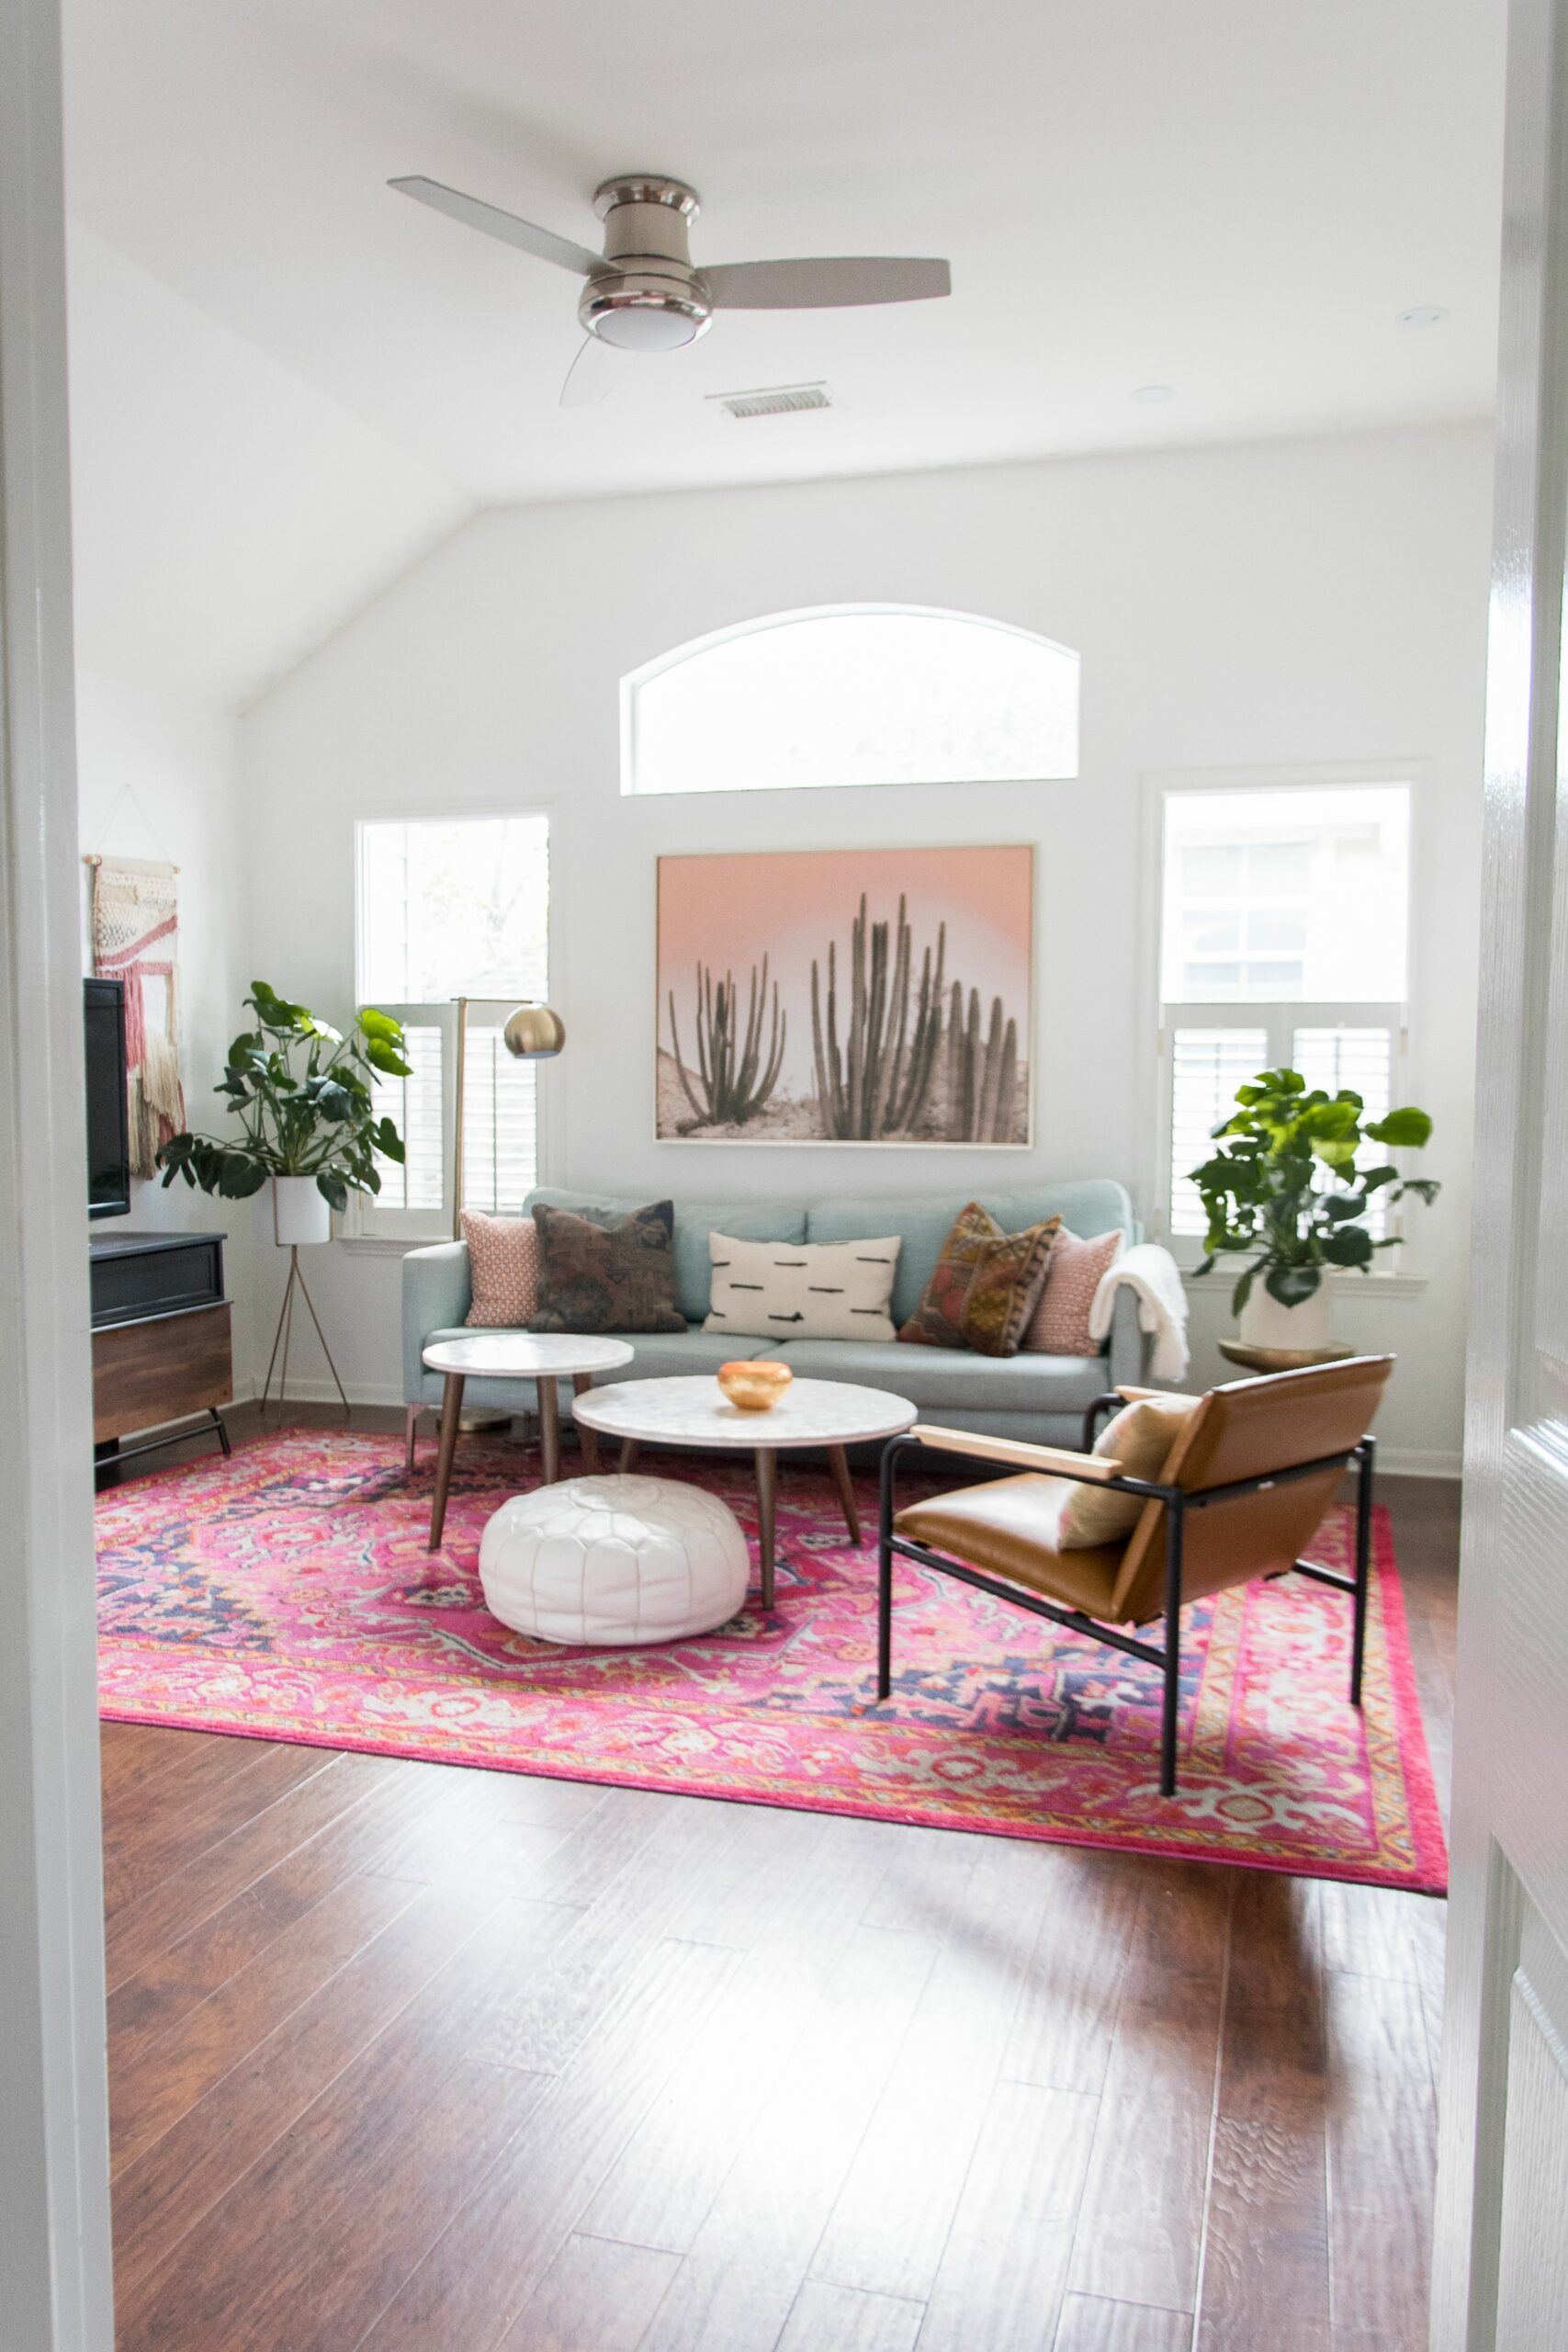 11 Small Living Room Decorating & Design Ideas - How to Decorate a ..